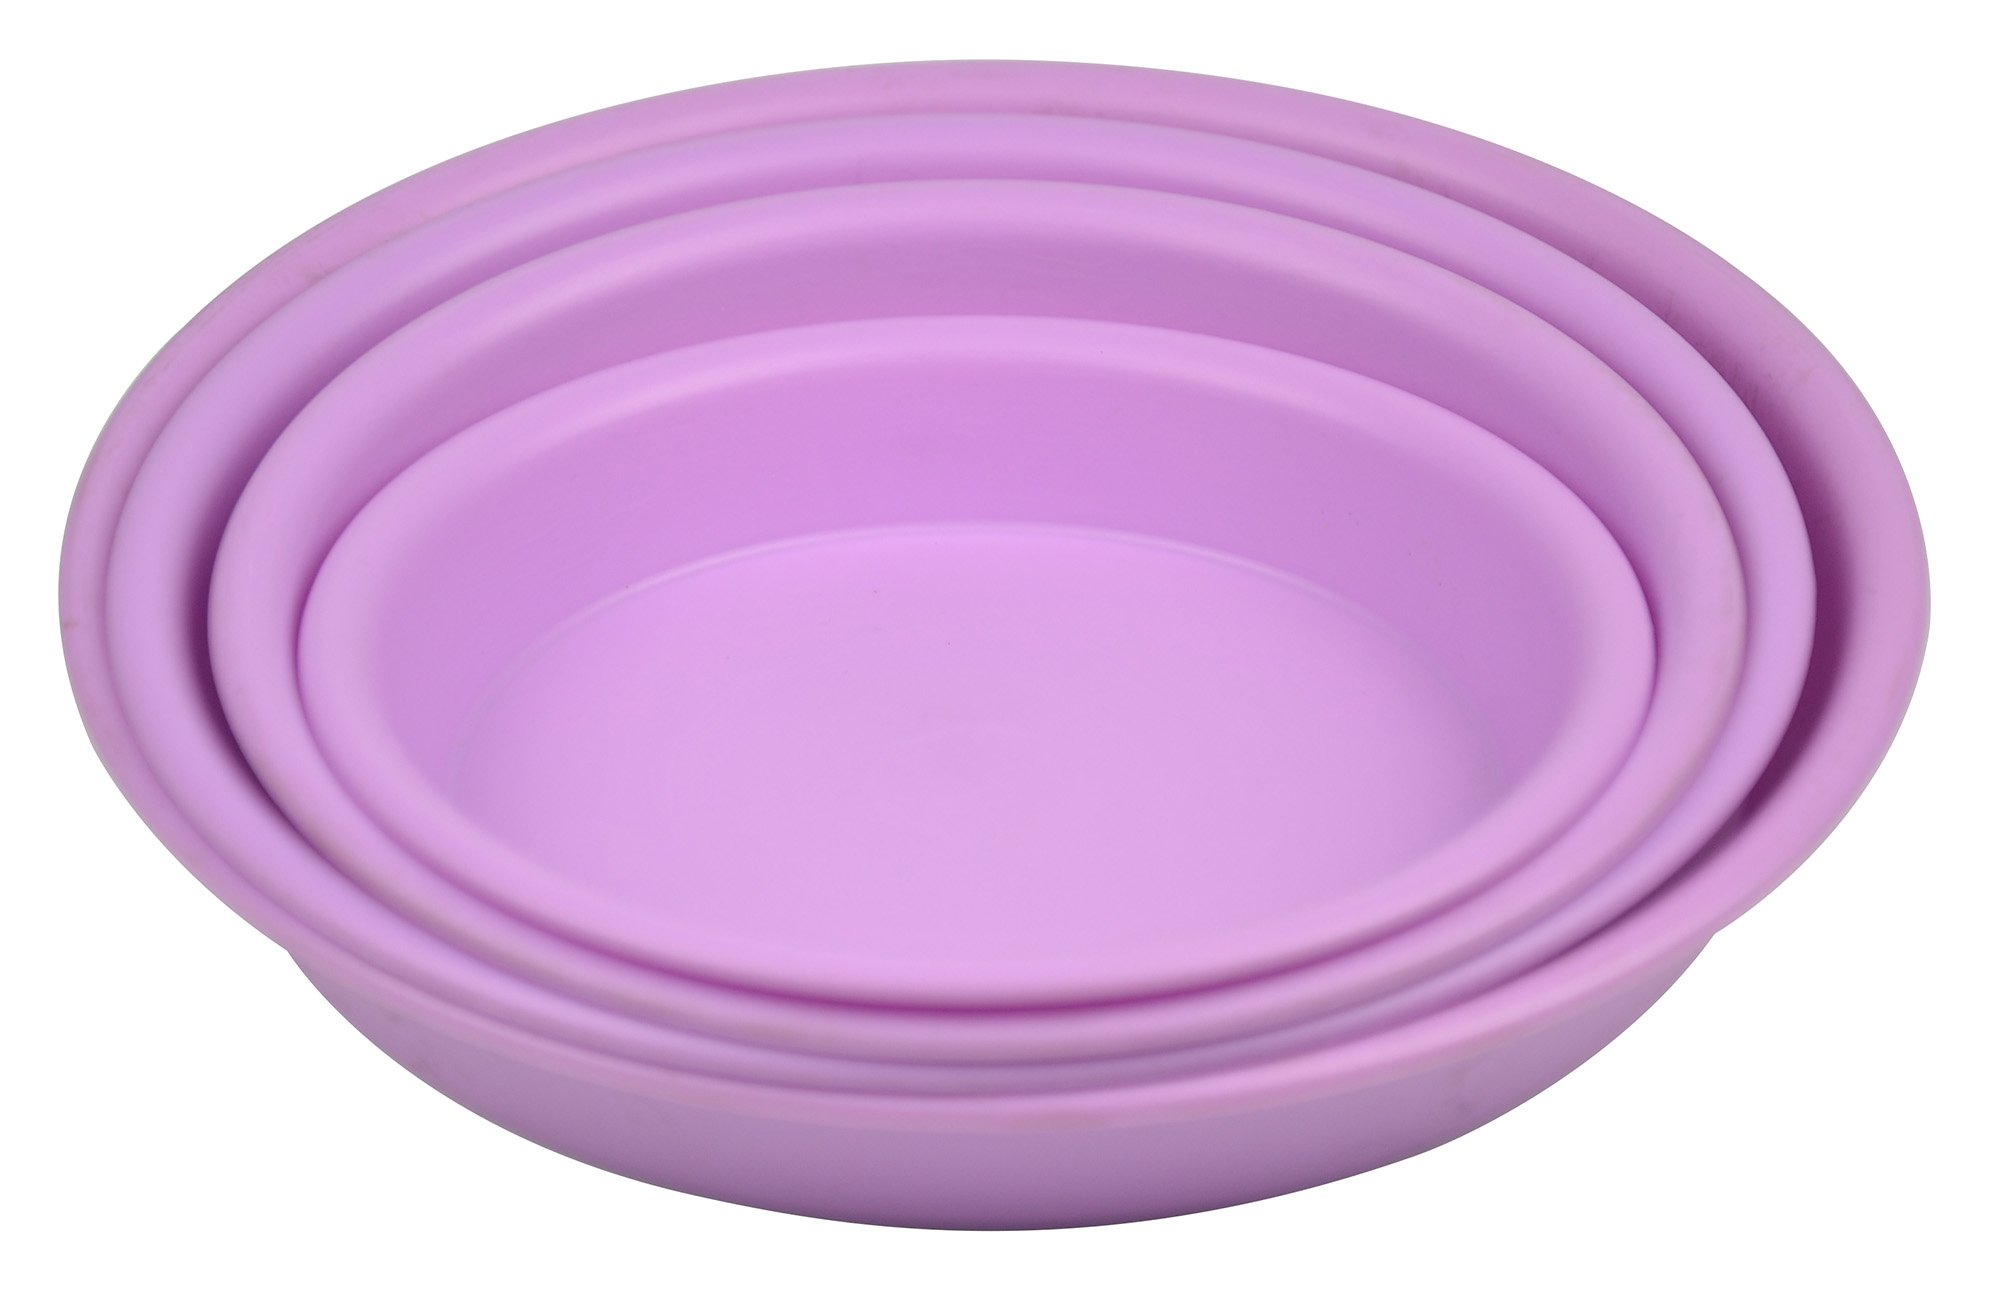 6.9'' Round Plant Saucer Planter Tray Pat Pallet for Flowerpot,Purple,1080 Count by Zhanwang